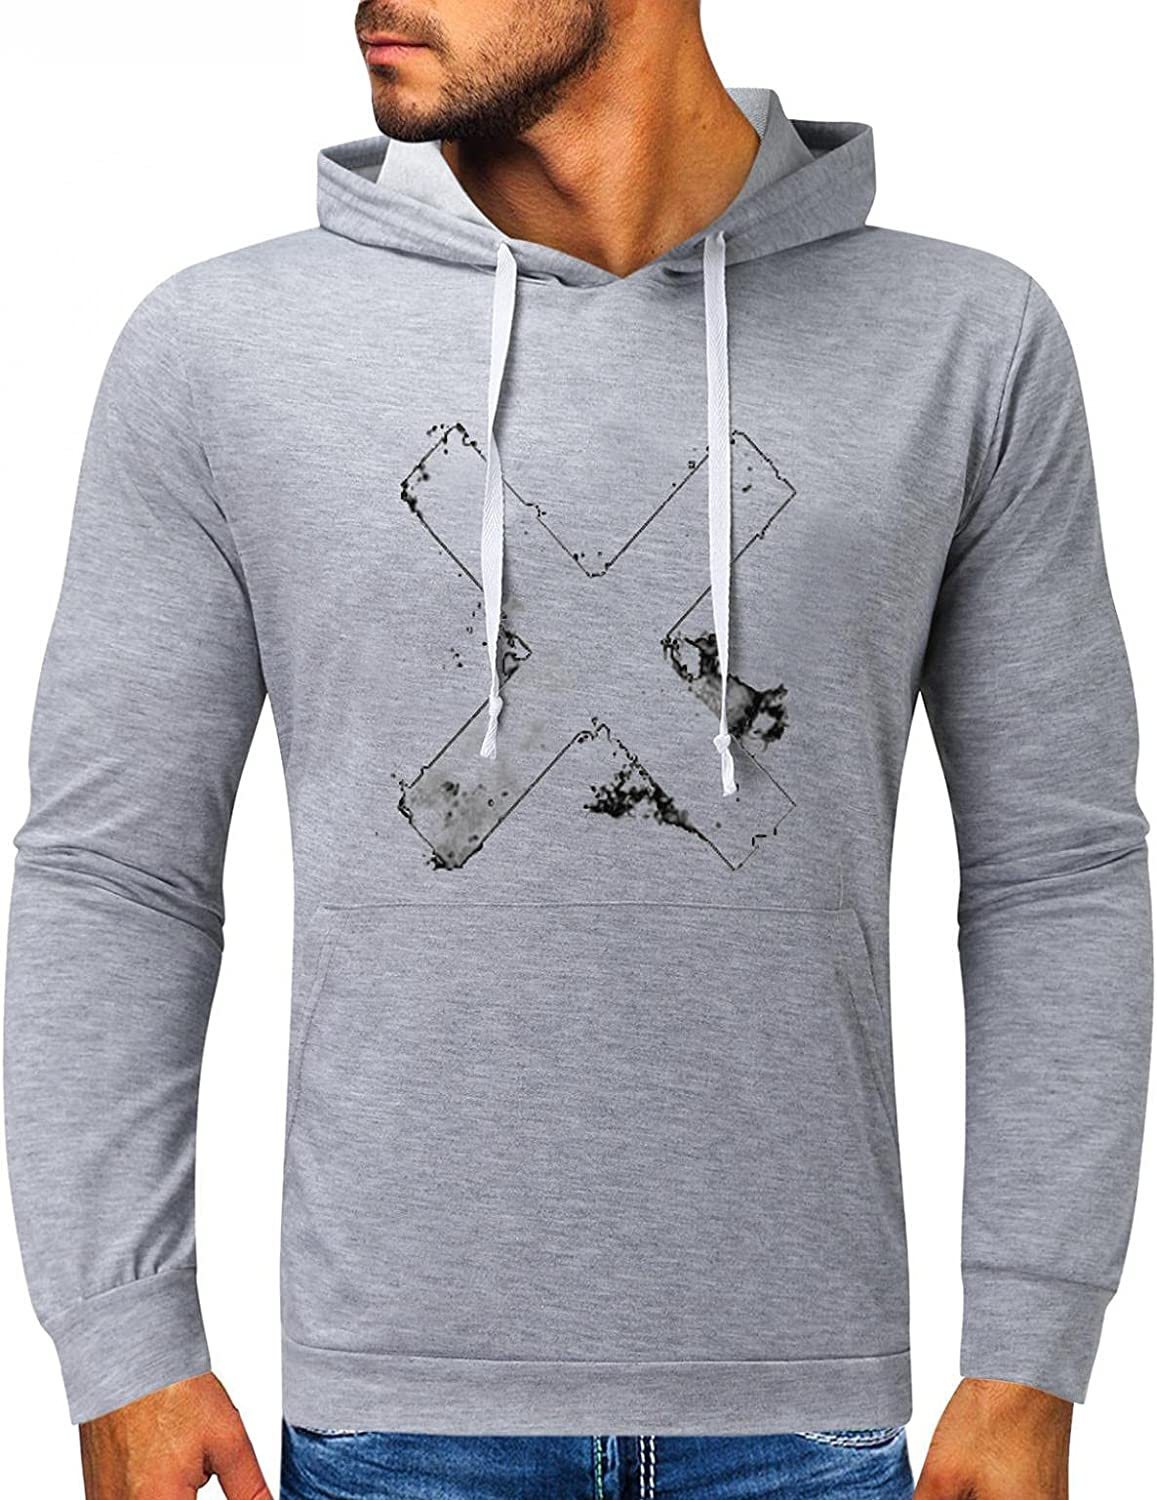 Qsctys Hoodies for Men - Slim Cotton Lightweight Casual Sweatshirts Pullover Hooded T Shirts Drawstring Hoodie with Pocket